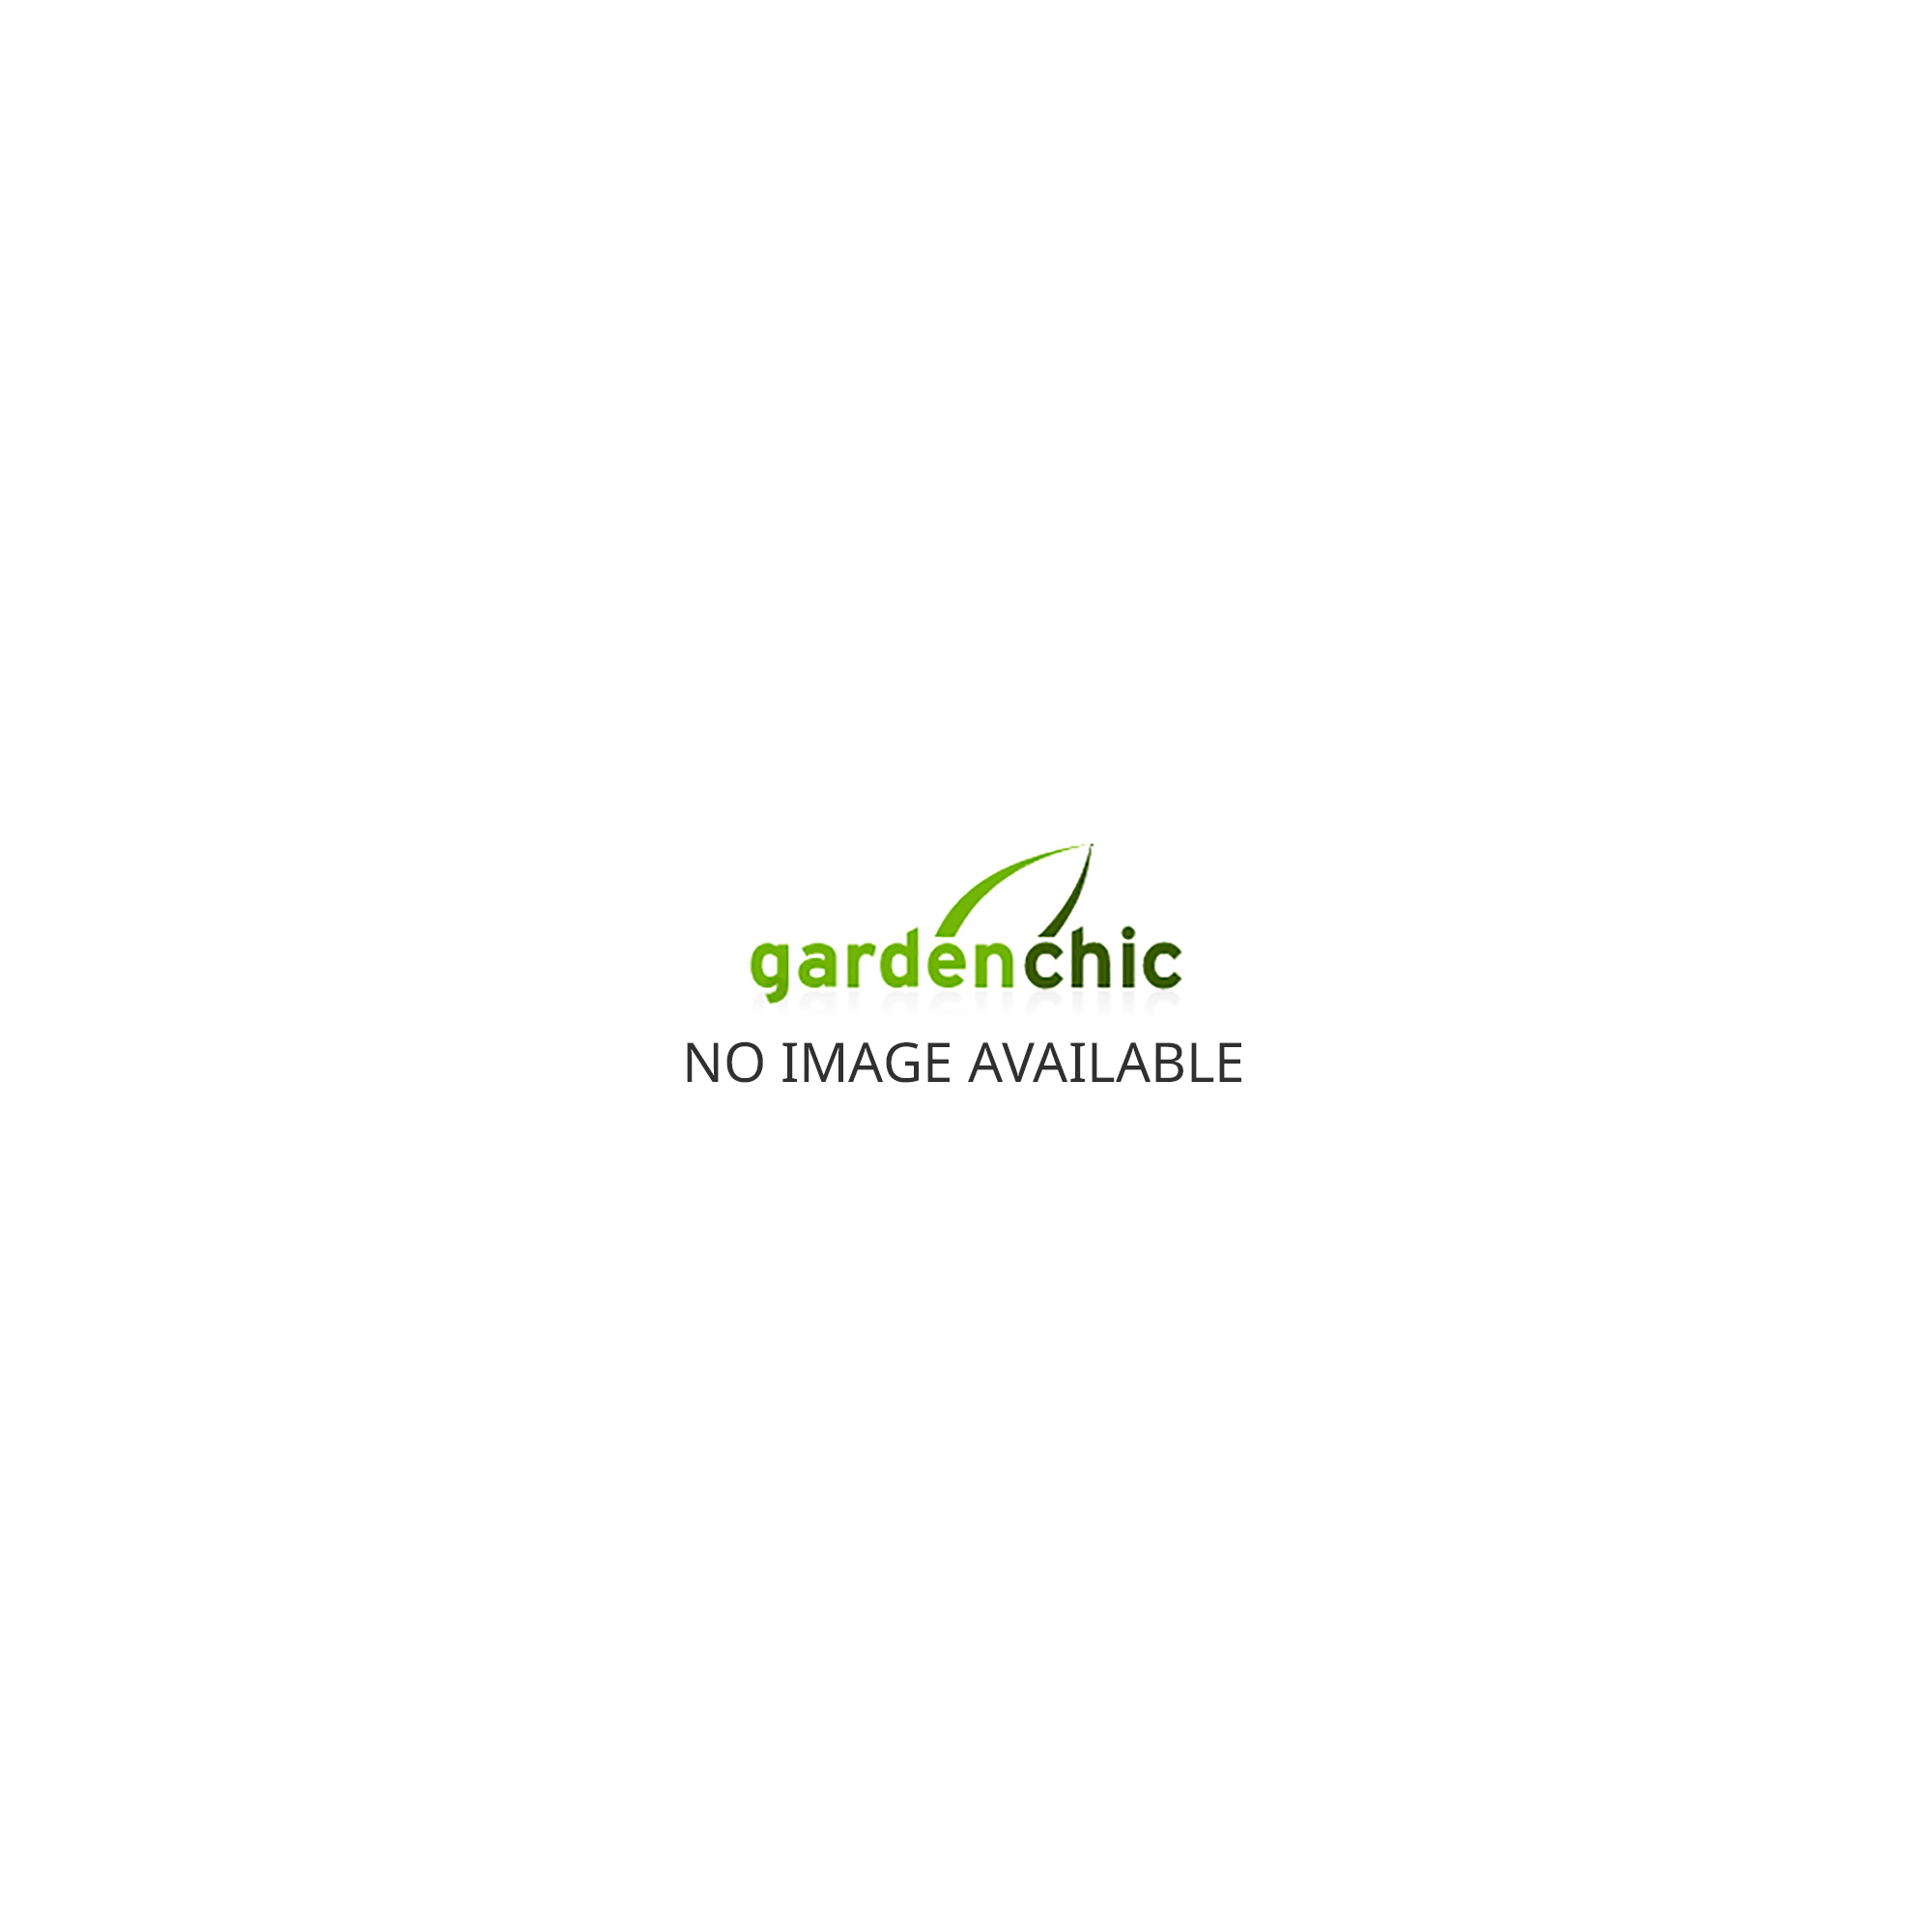 IDA 1300 Wall Garden 6ft x 2ft Greenhouse - Silver FREE Matching Base until APRIL 2018